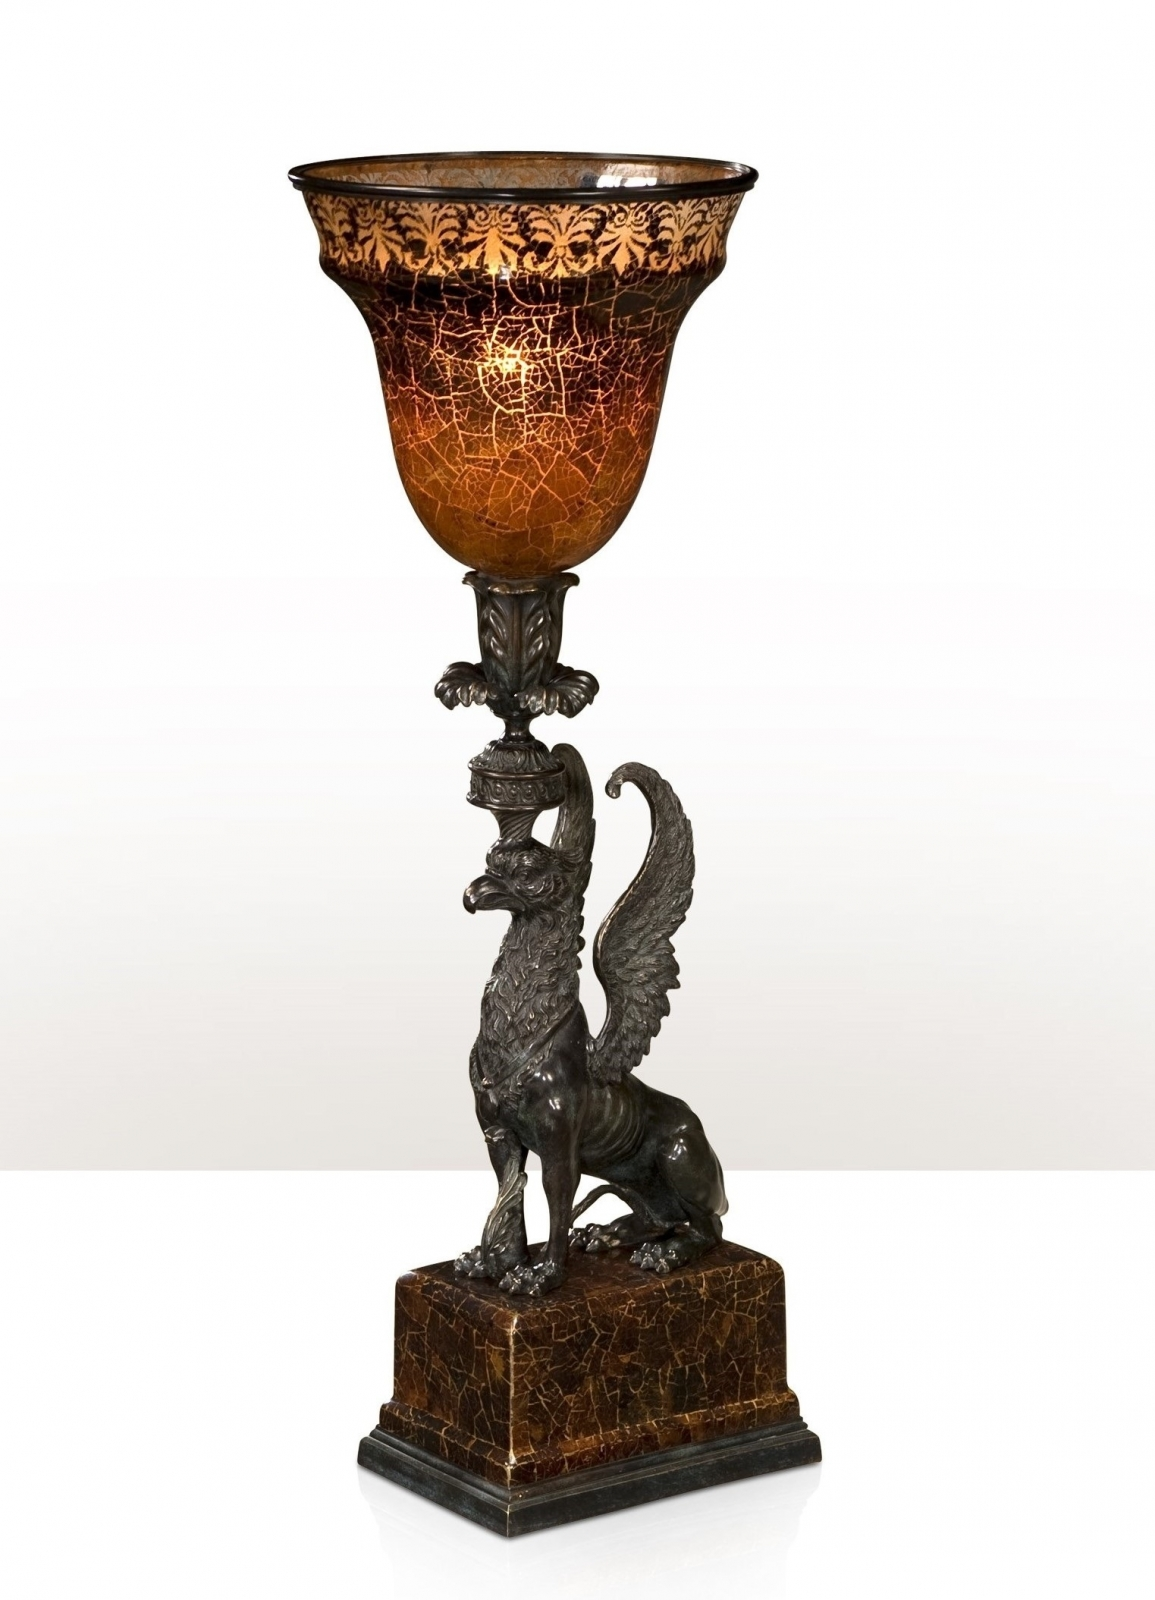 A verdigris brass table lamp with winged sphinx